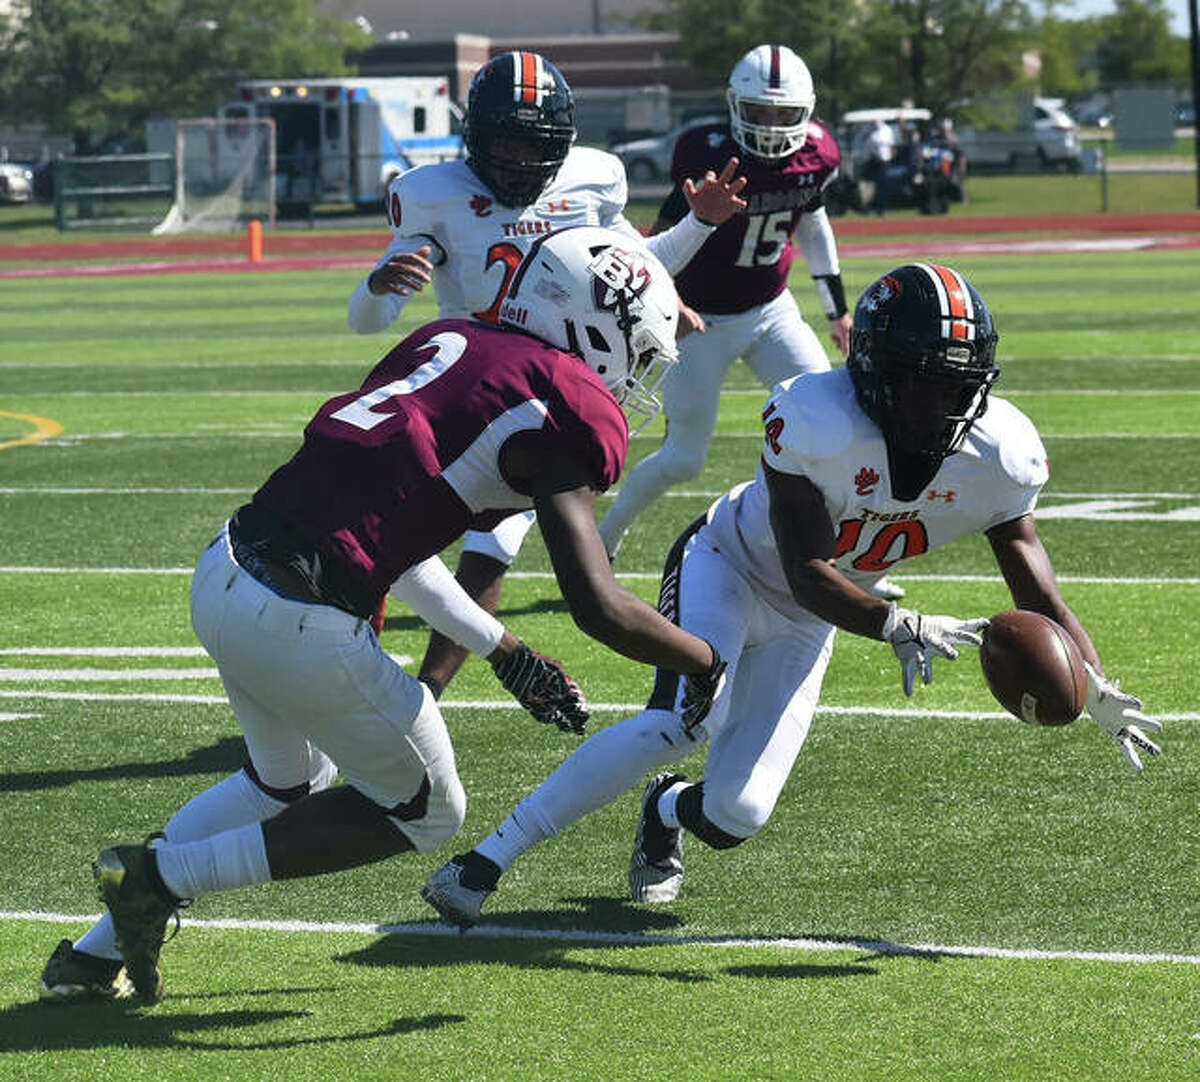 Edwardsville's Johnnie Robinson nearly recovers a kickoff during the first quarter against Belleville West.